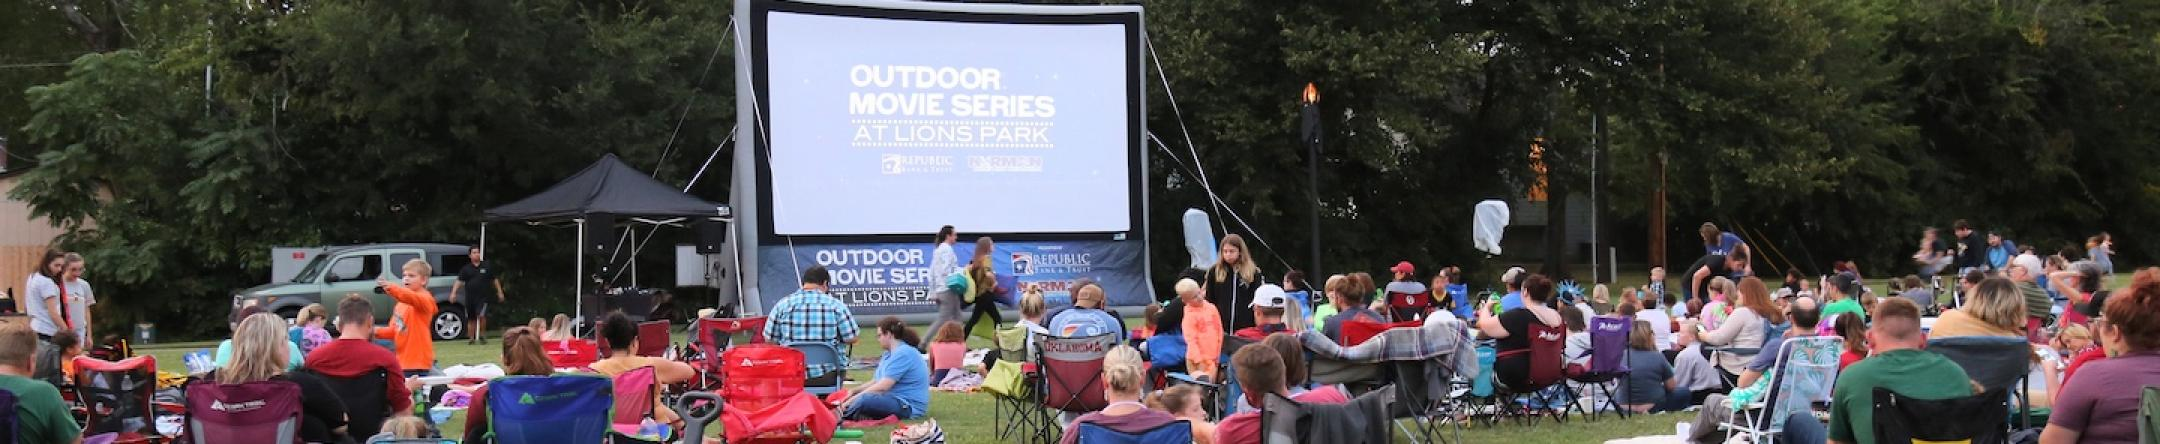 Group Gathering for a Movie in a Park